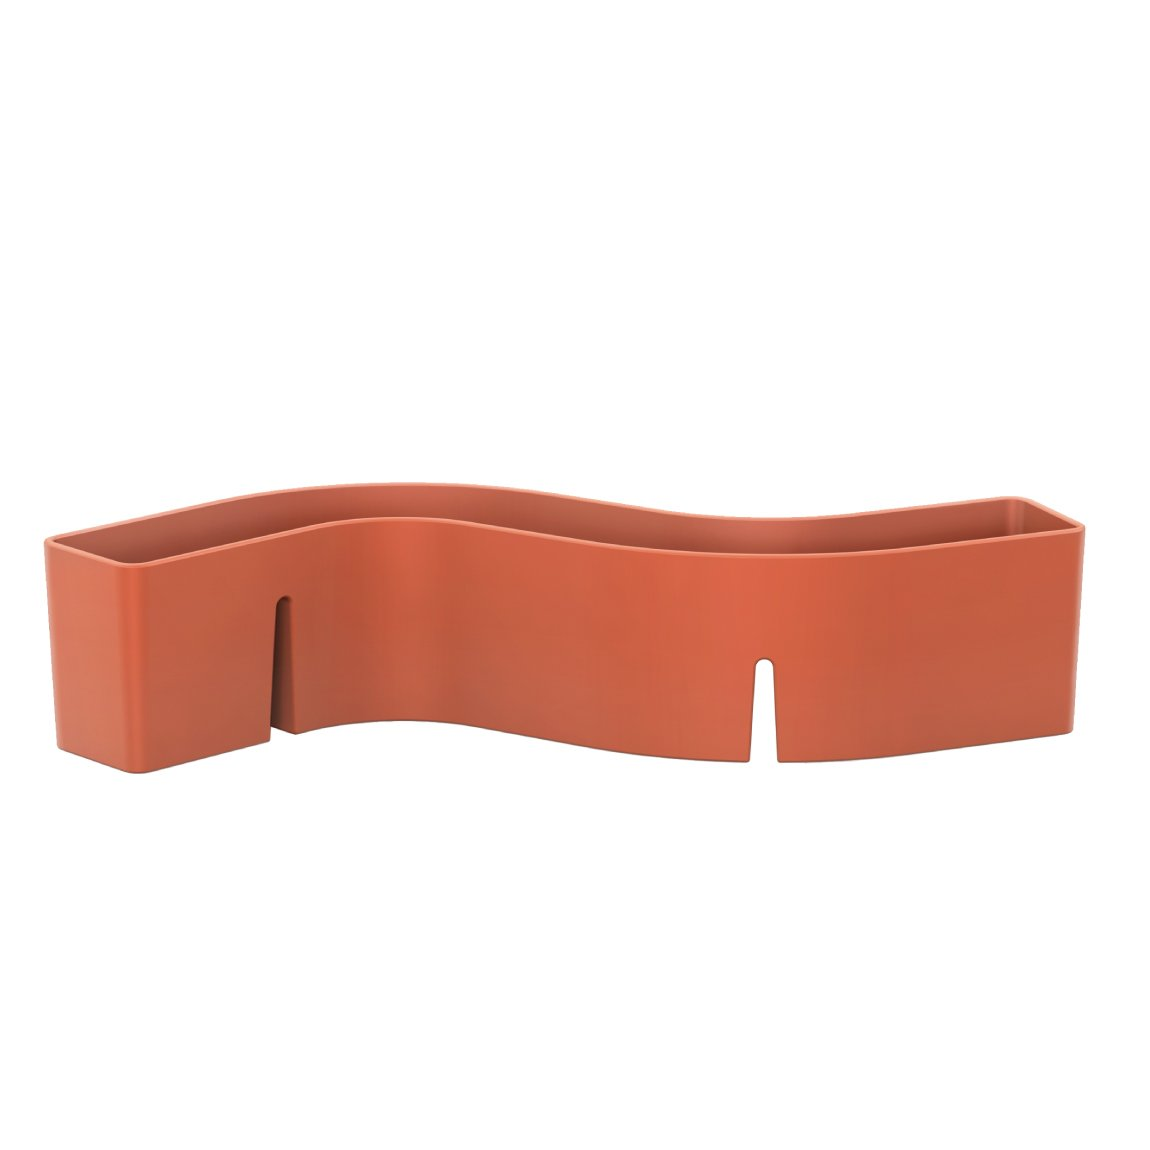 Vitra S-Tidy Organizer Opberger Poppy Red